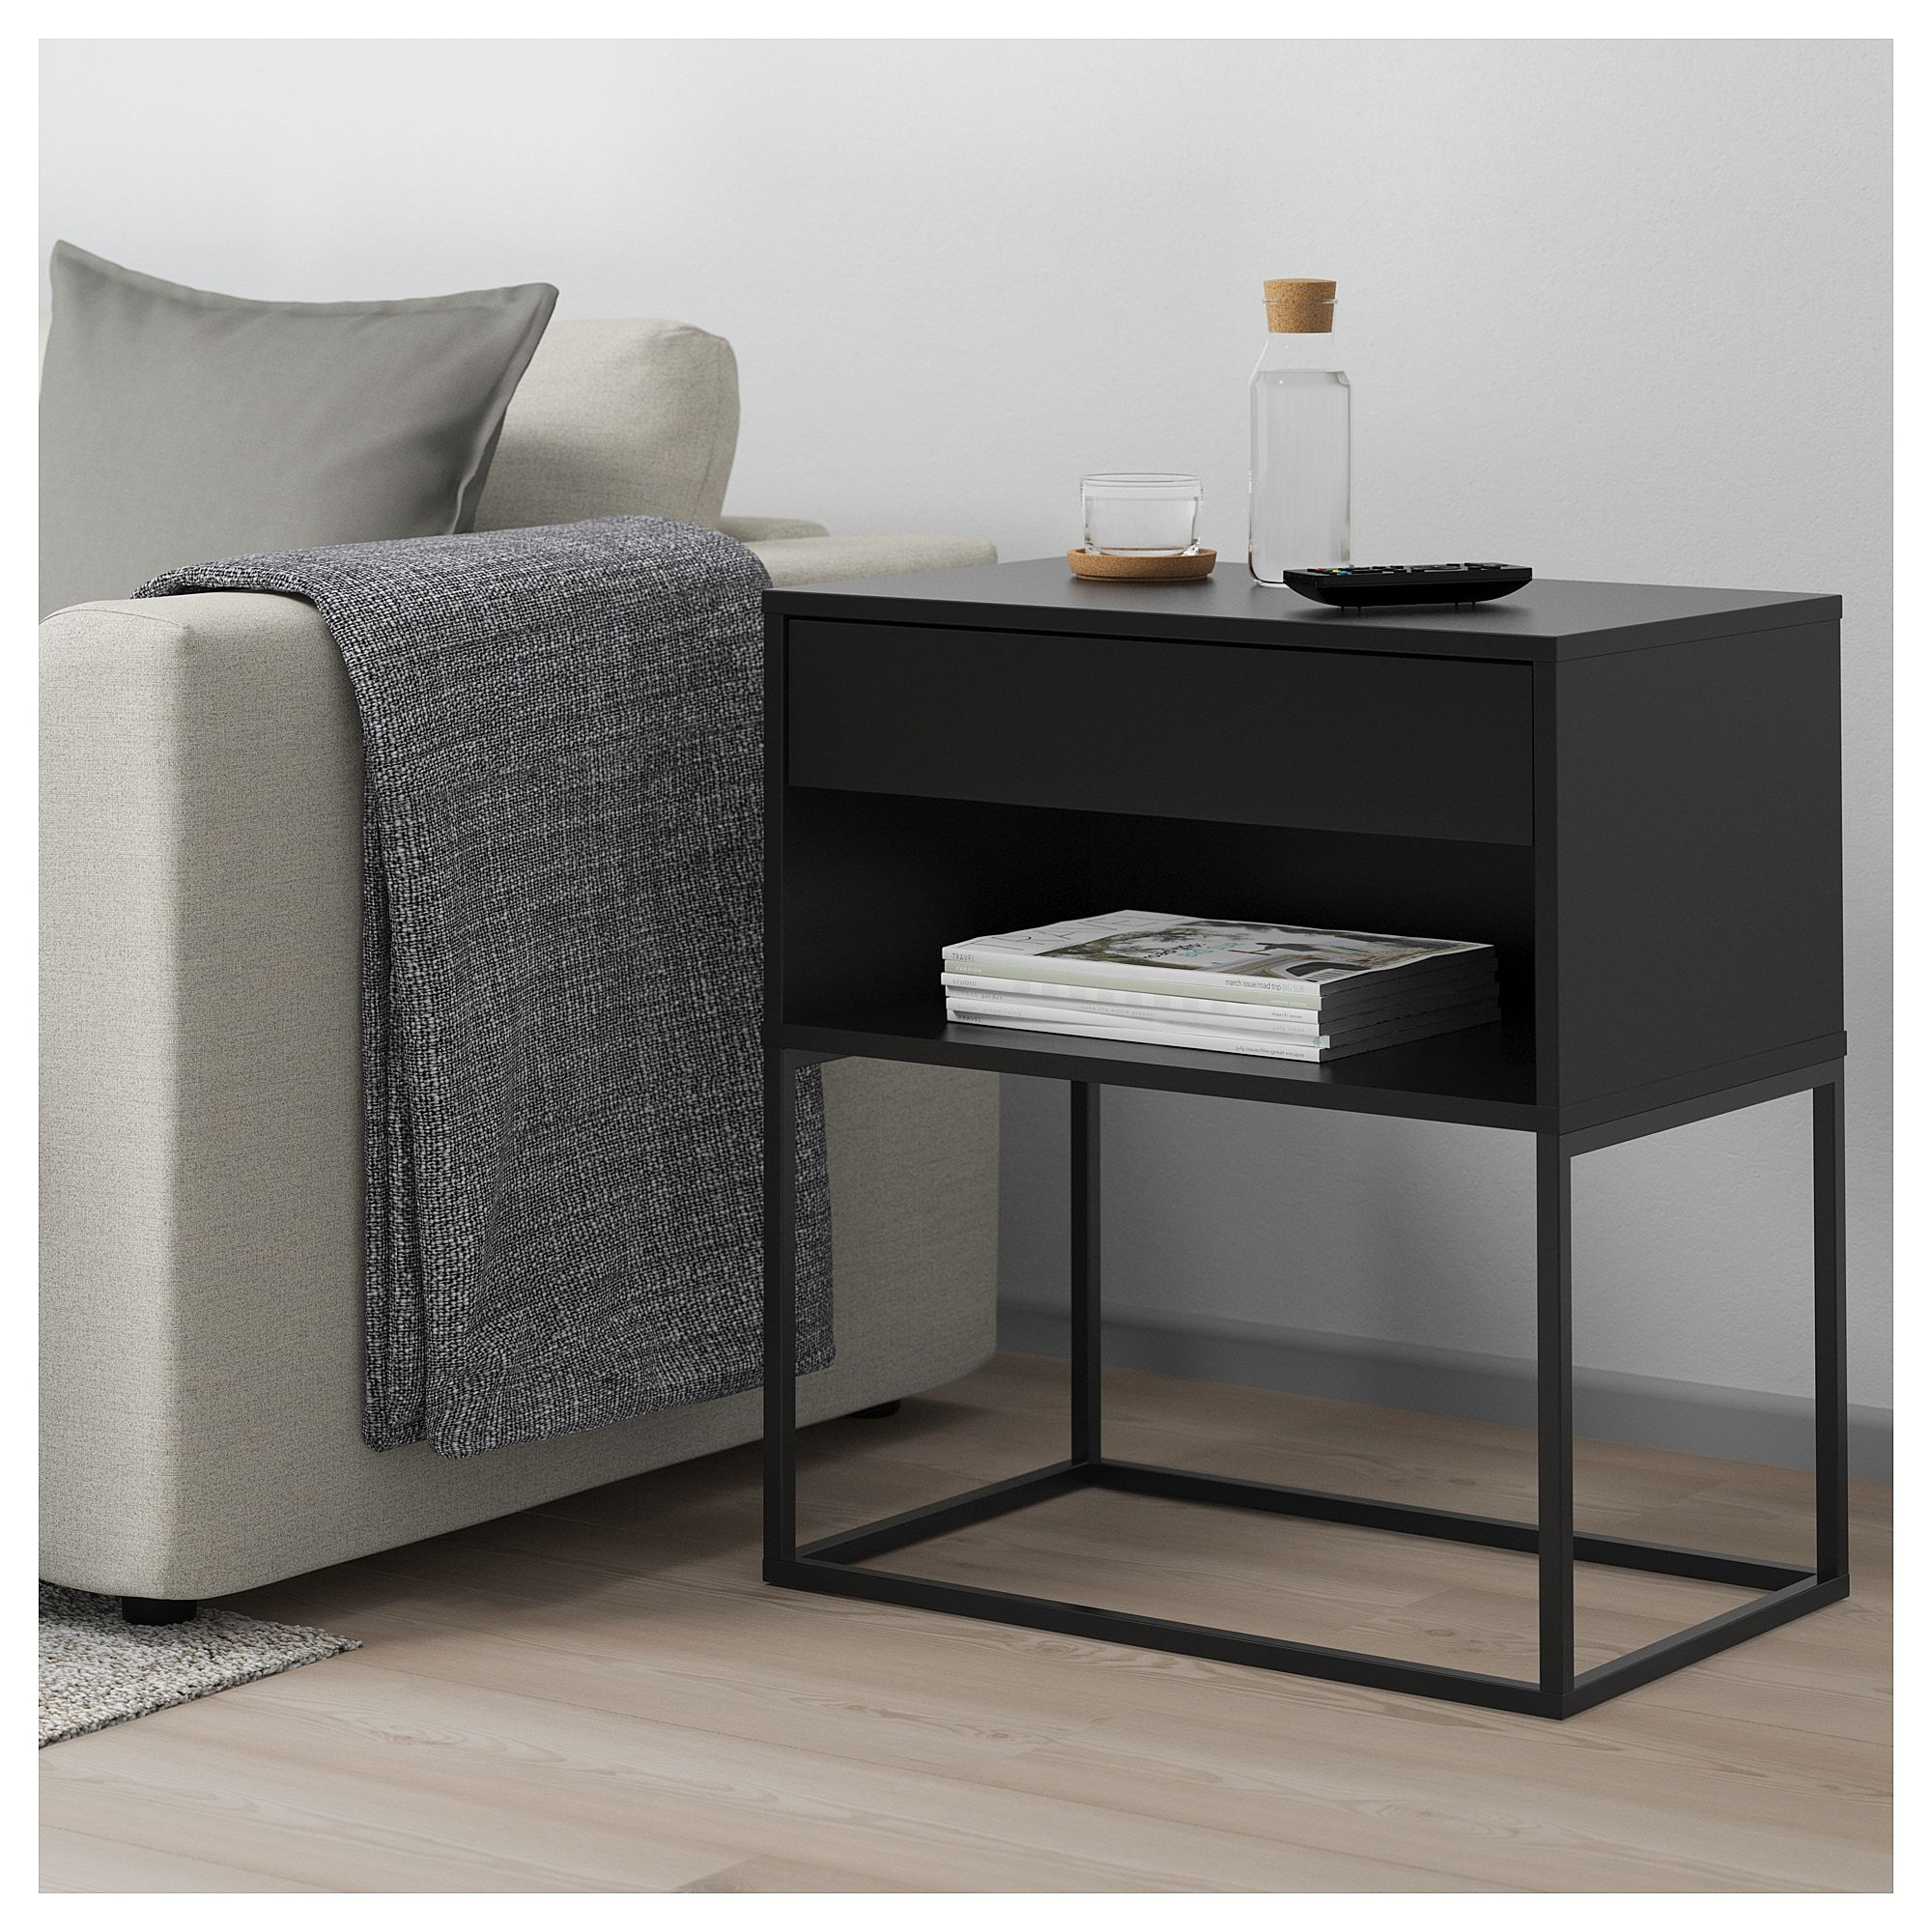 Ikea Vikhammer Nightstand Black In 2019 Products